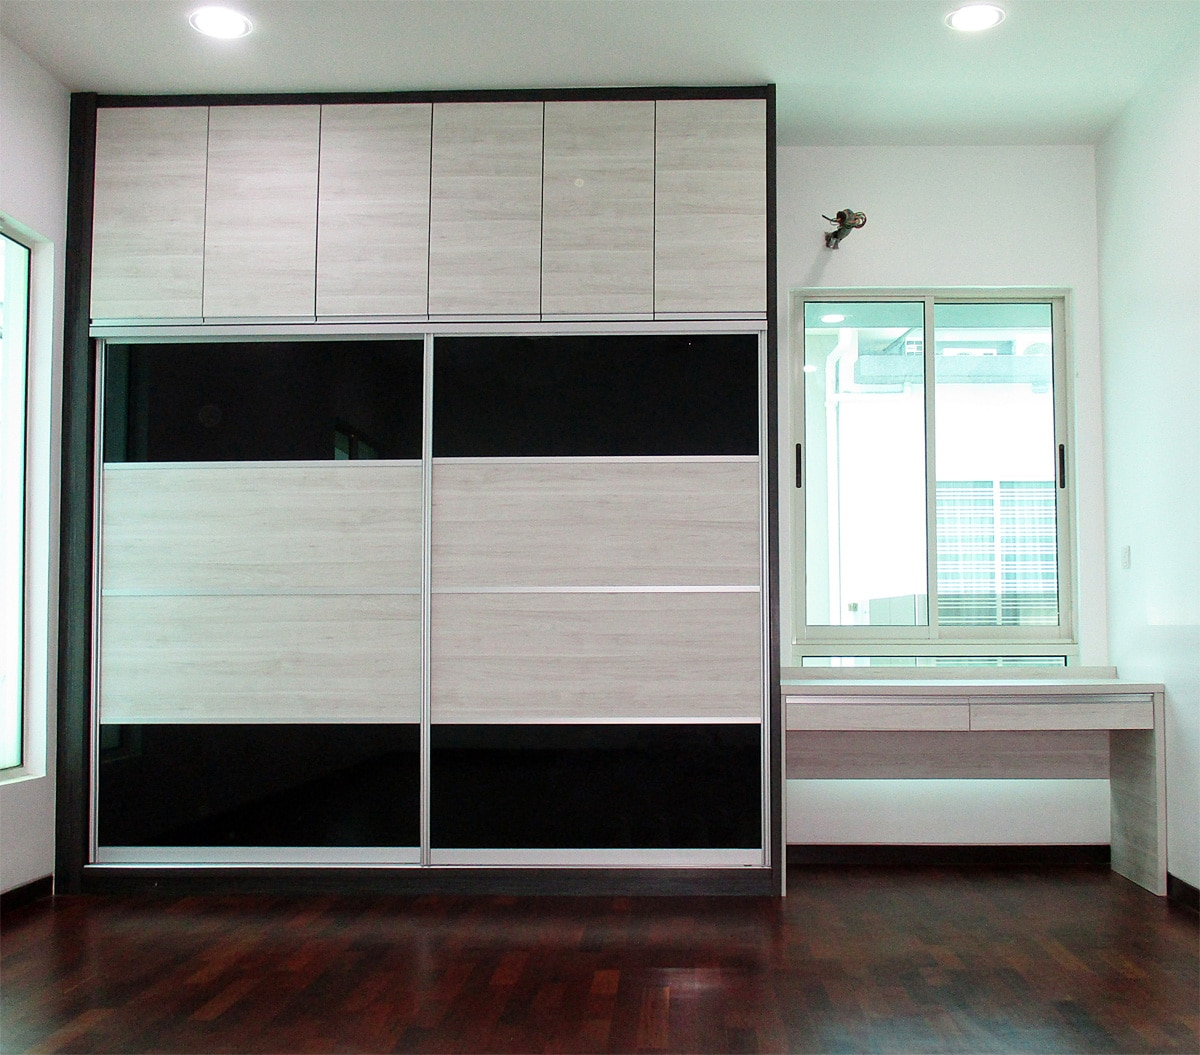 suit centre to reputation designed wardrobes has wardrobe solutions a your in queenslander established for design superior the built since panels doors custom hinged storage brisbane